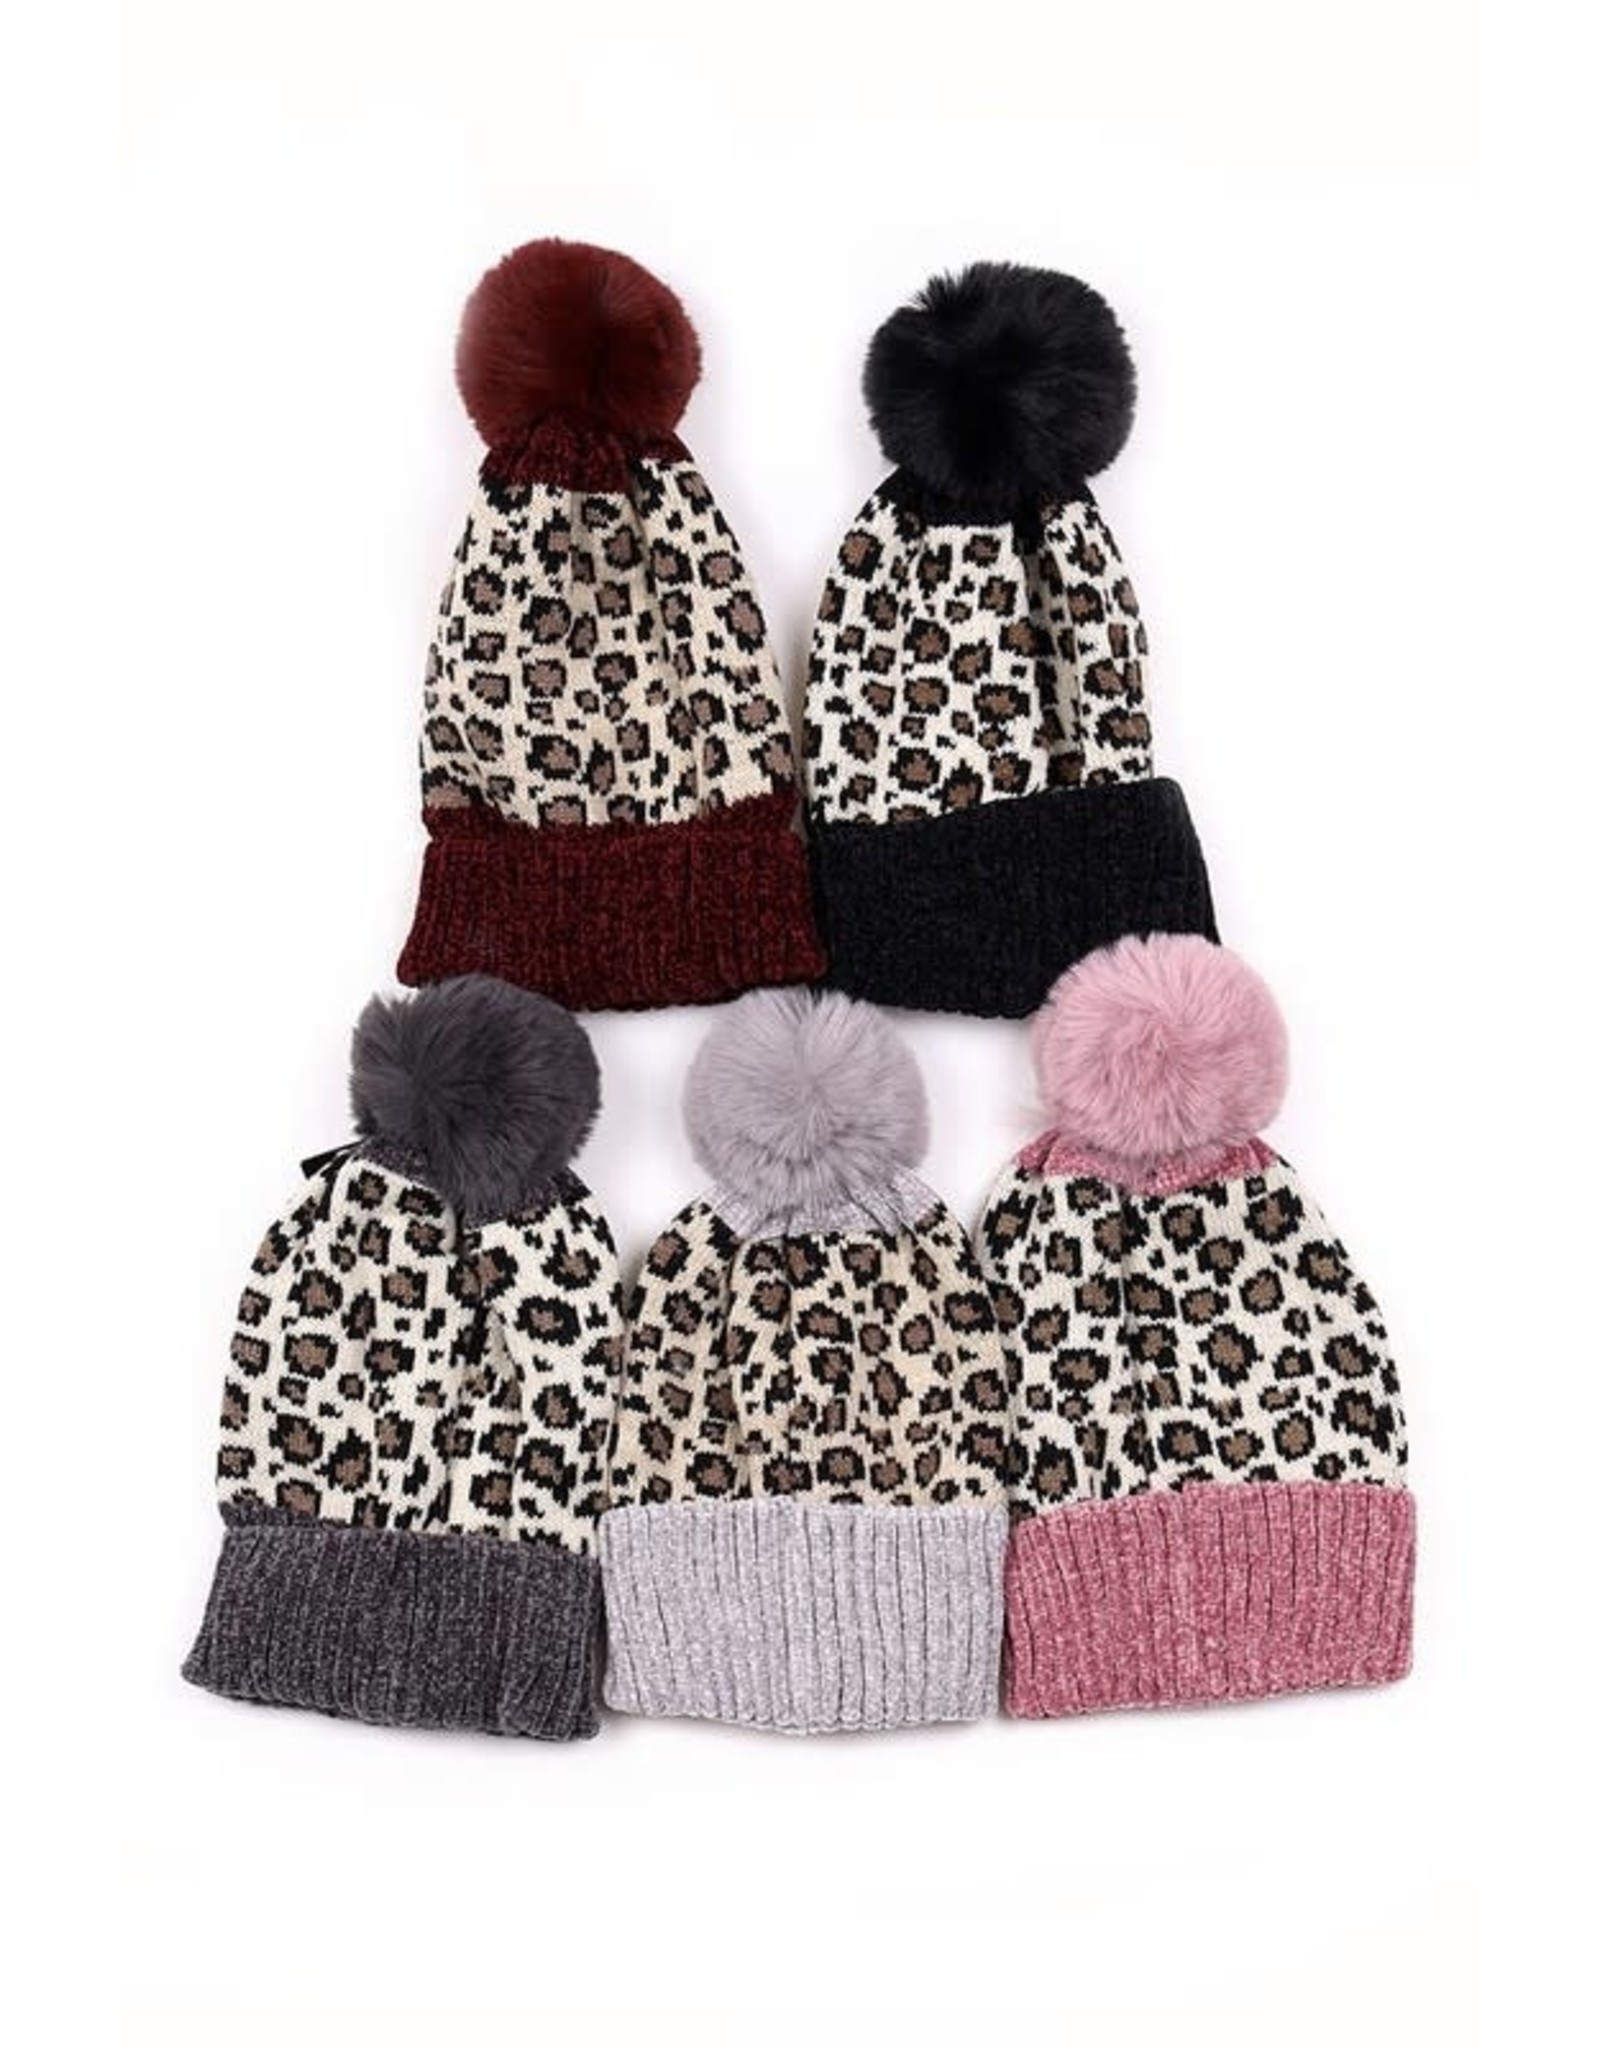 The Ritzy Gypsy CUDDLY Leopard Beanie